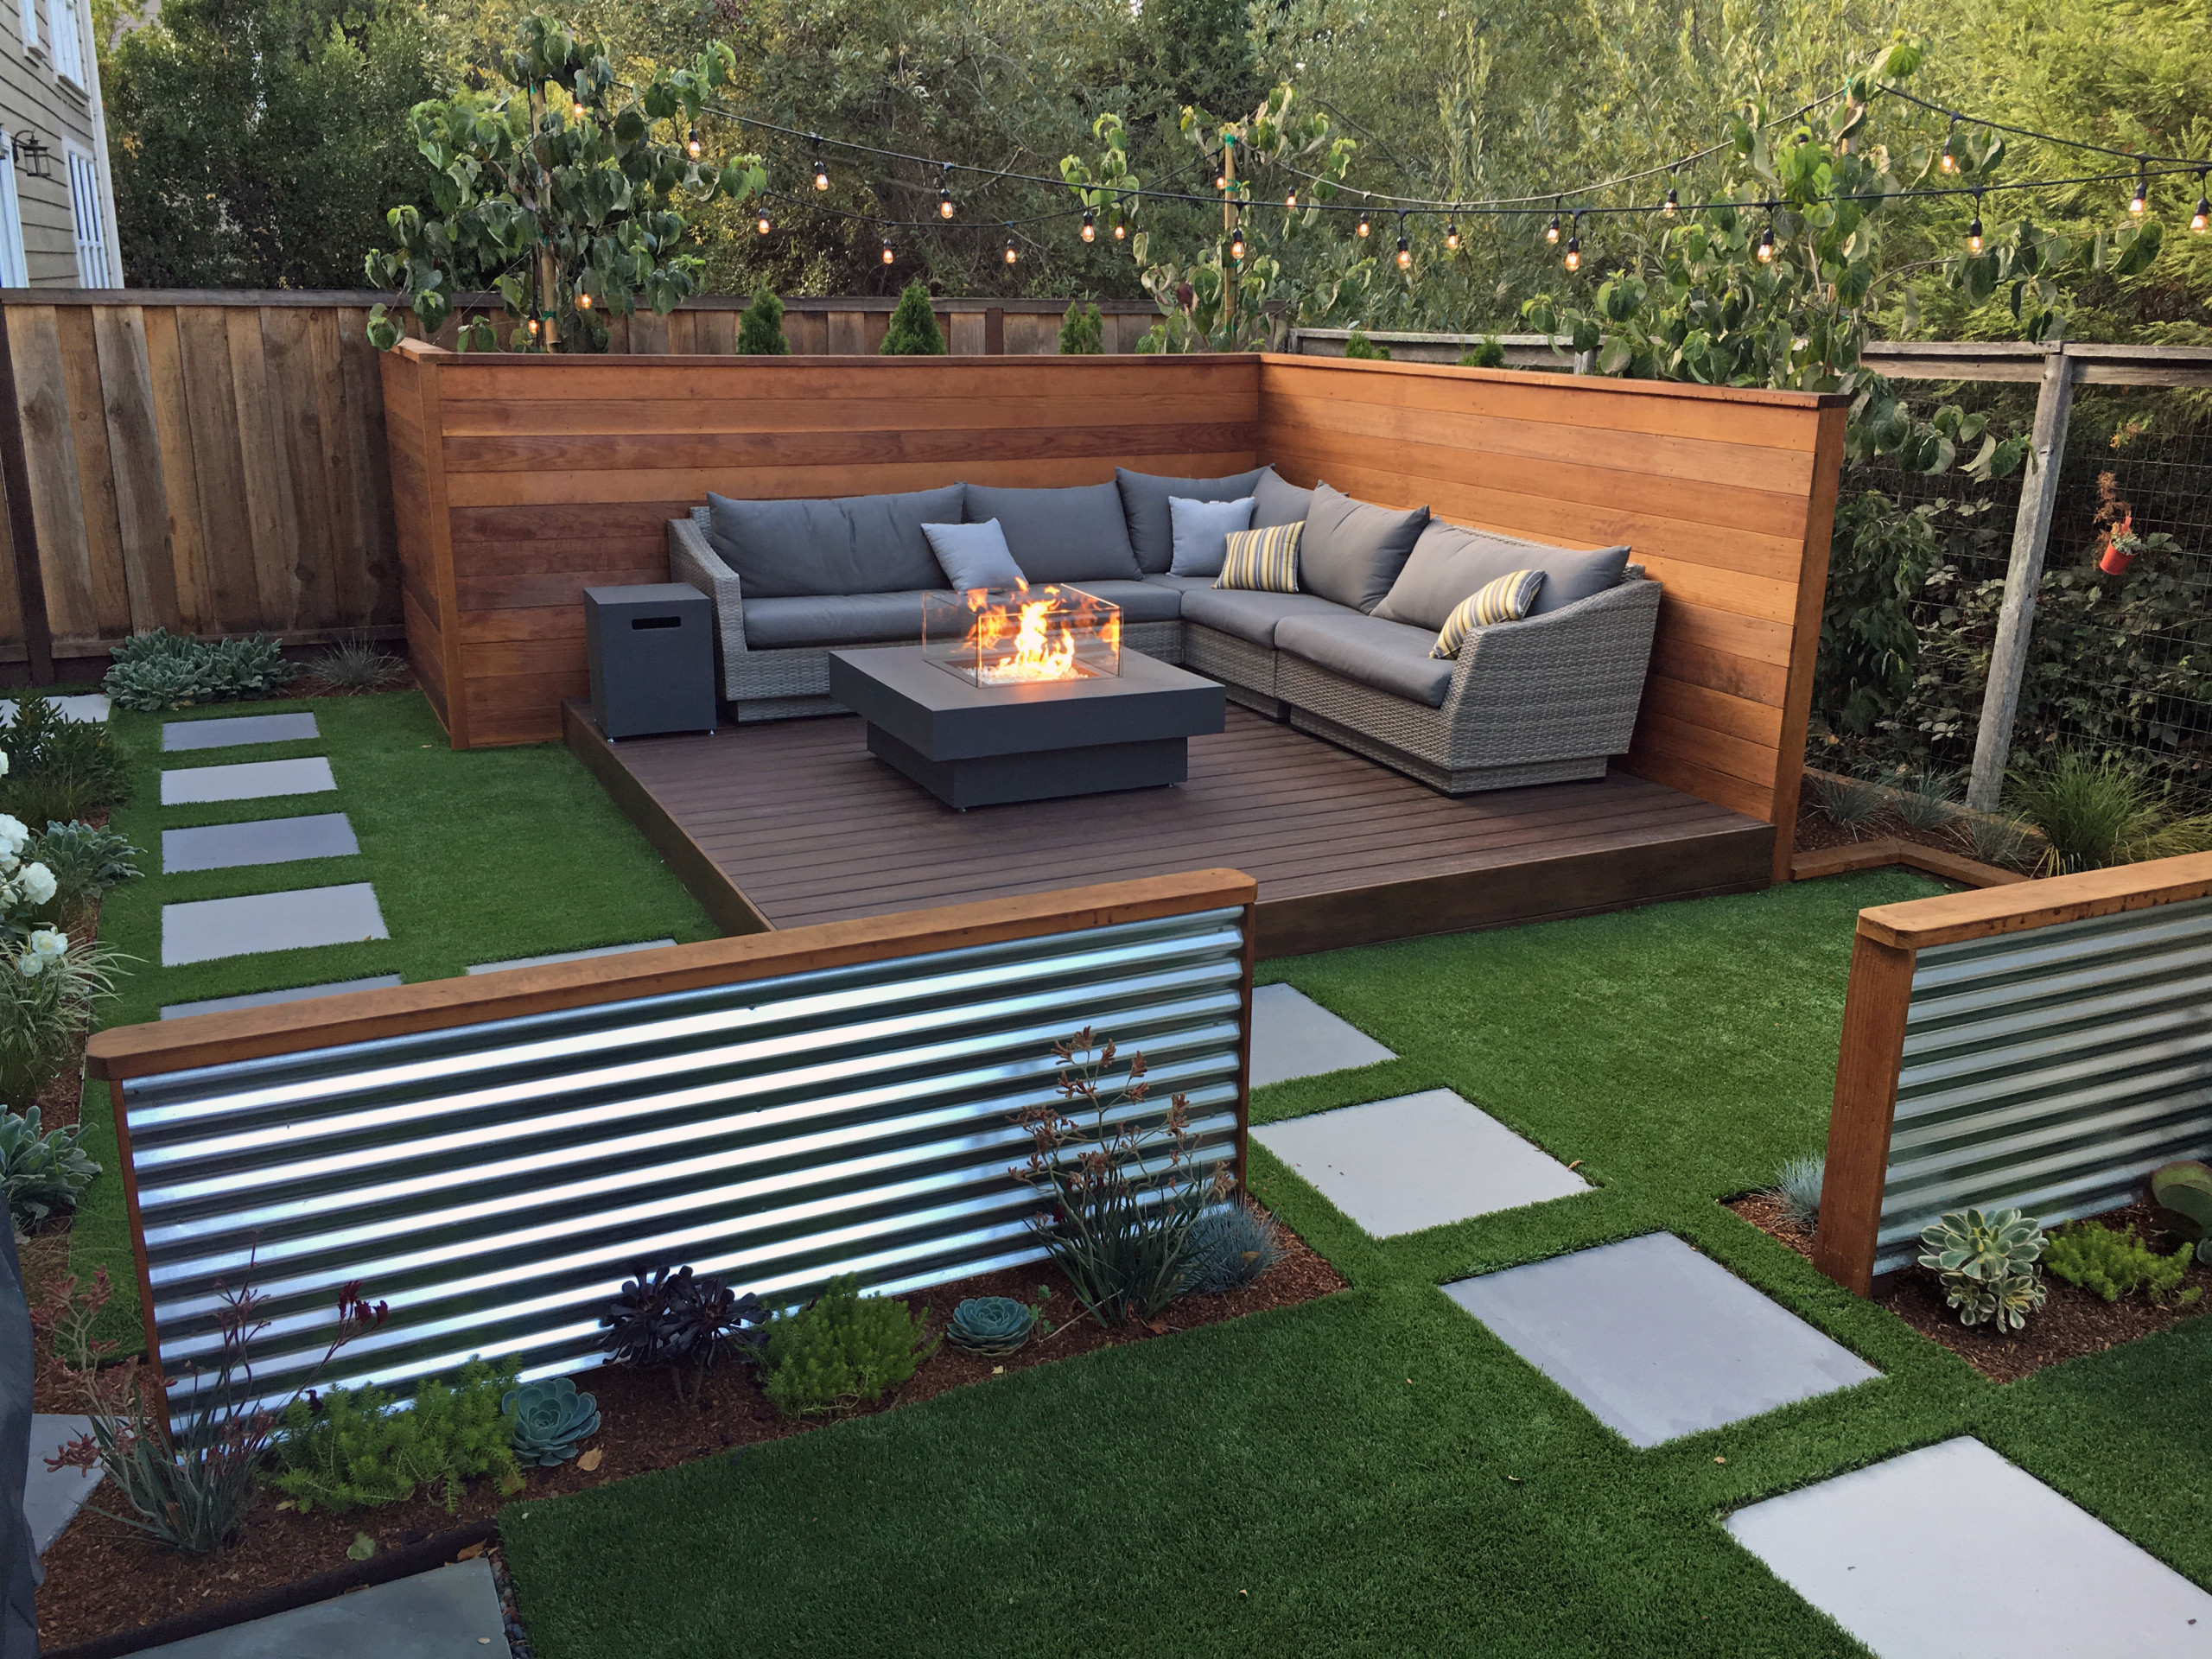 75 Beautiful Small Backyard Deck Pictures Ideas November 2020 Houzz